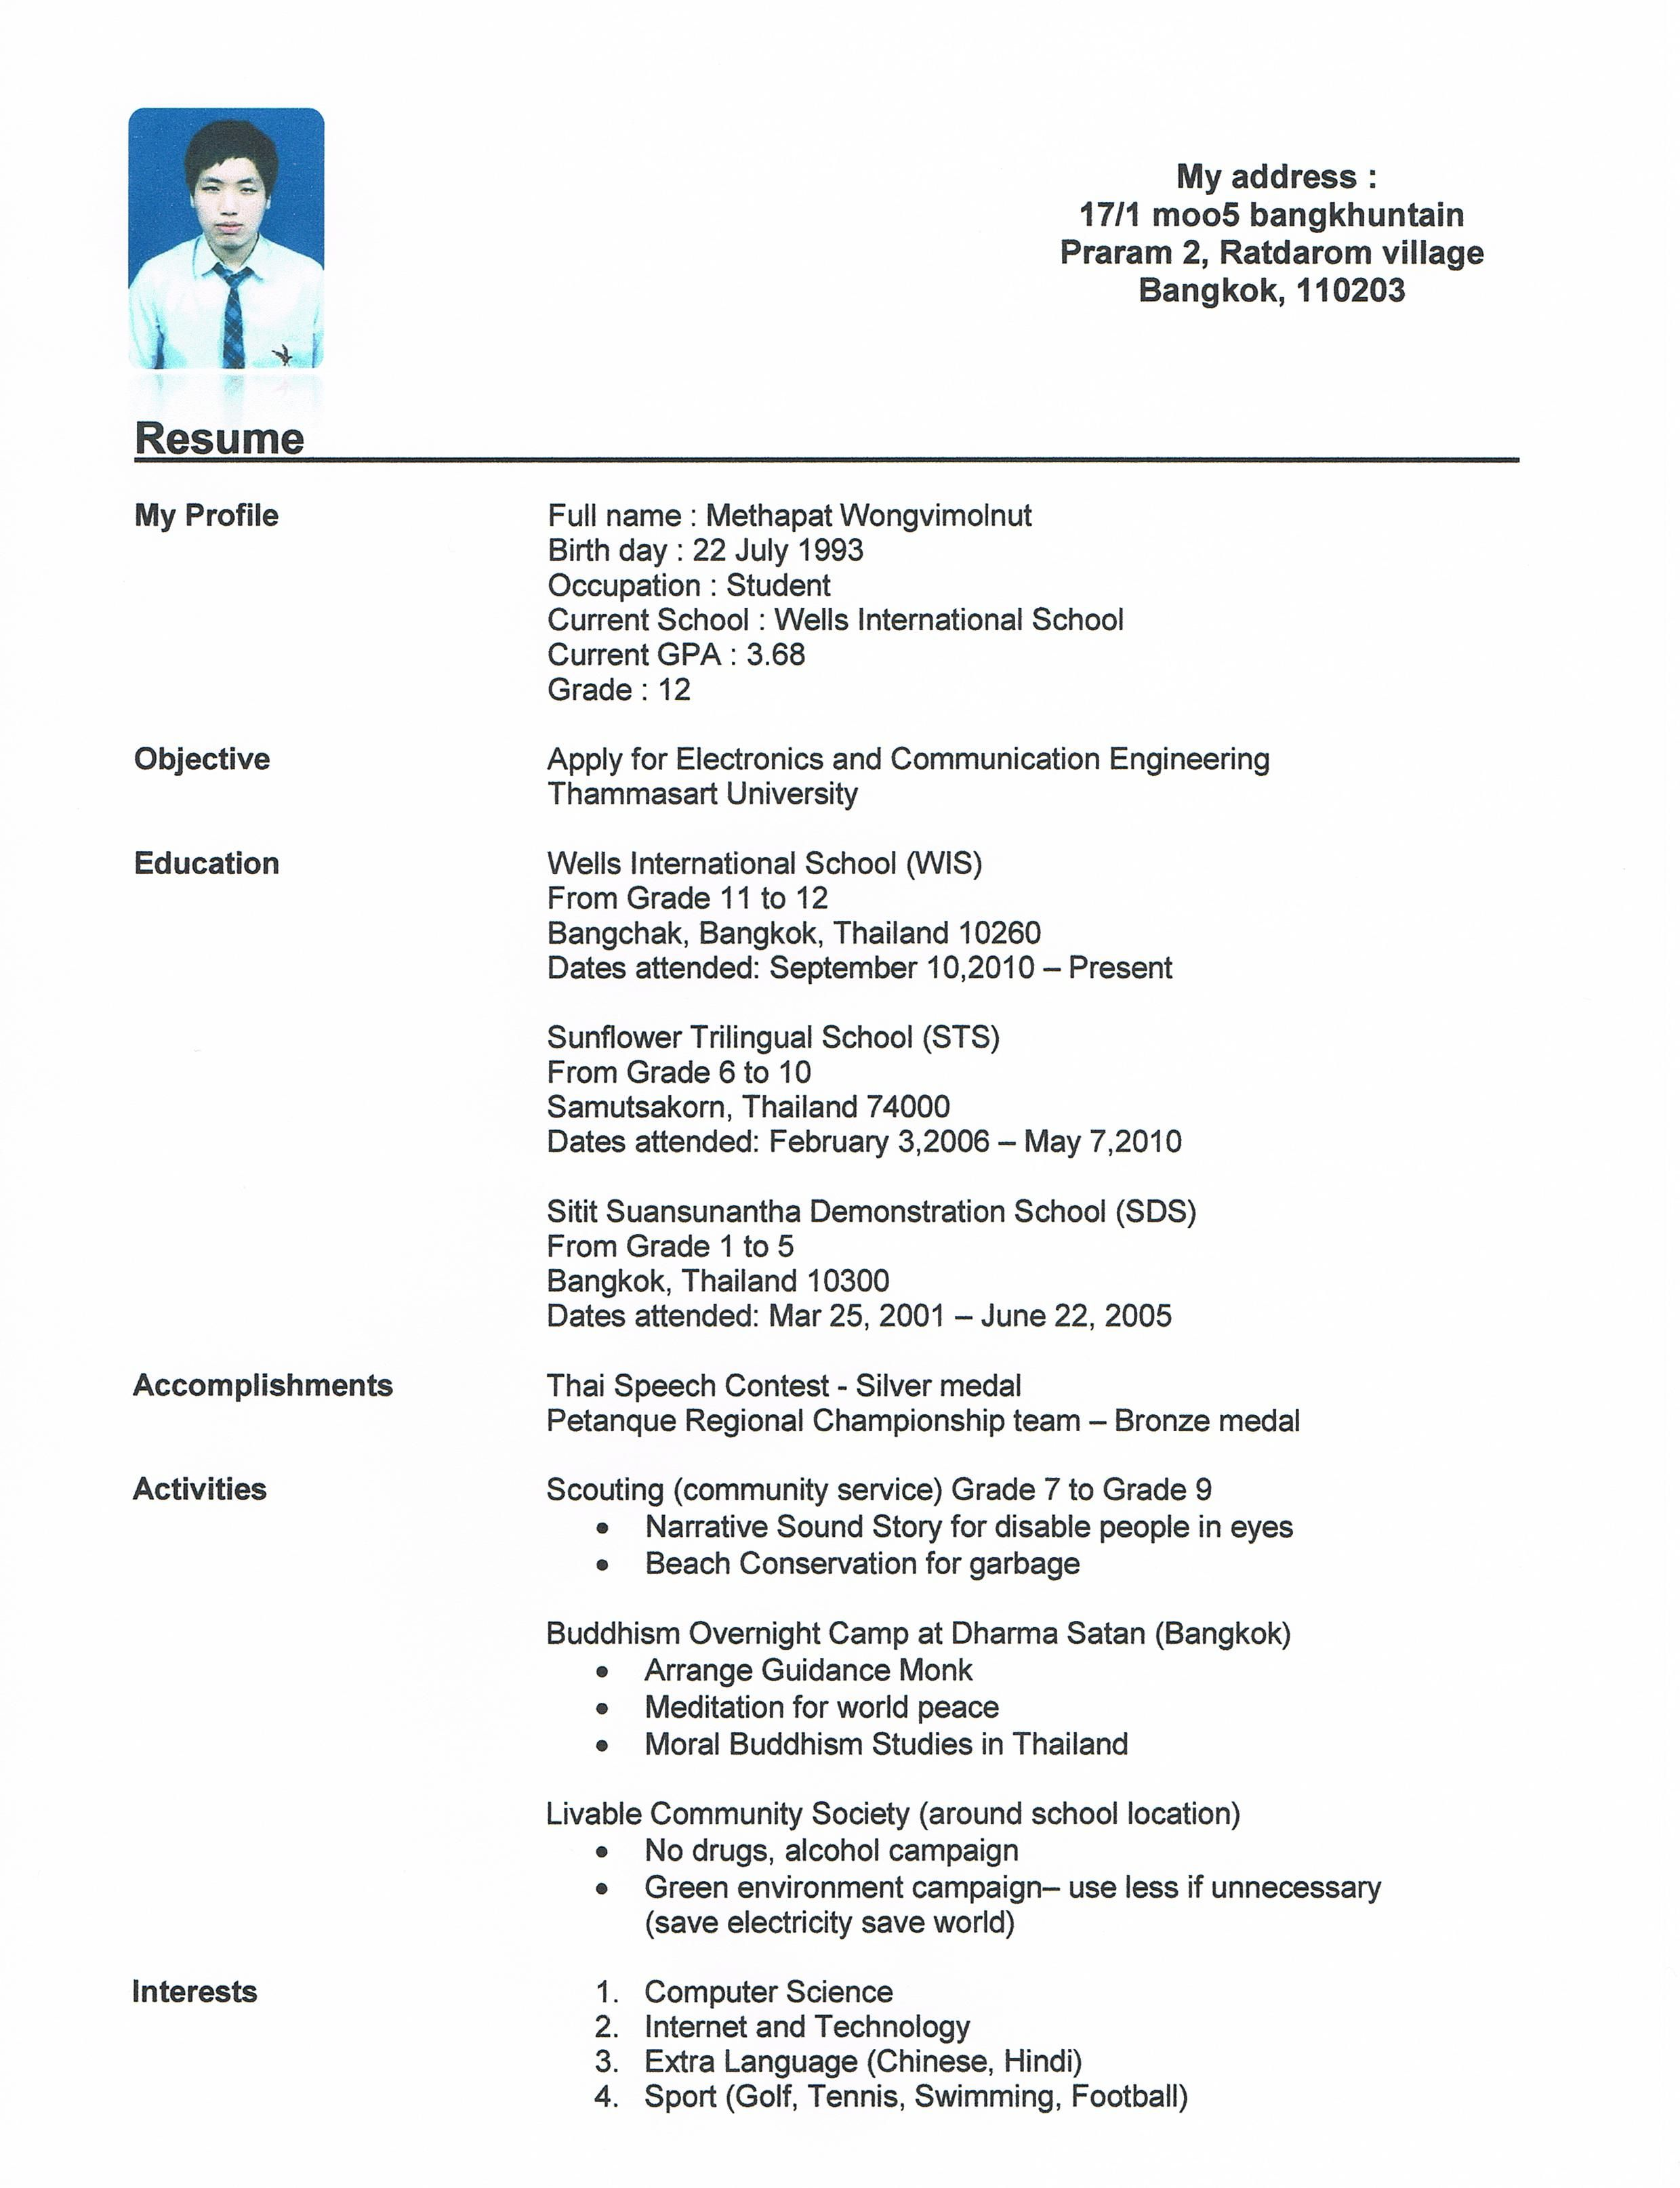 Resume For A Highschool Student Blank Resume Template For High School Students  College Student